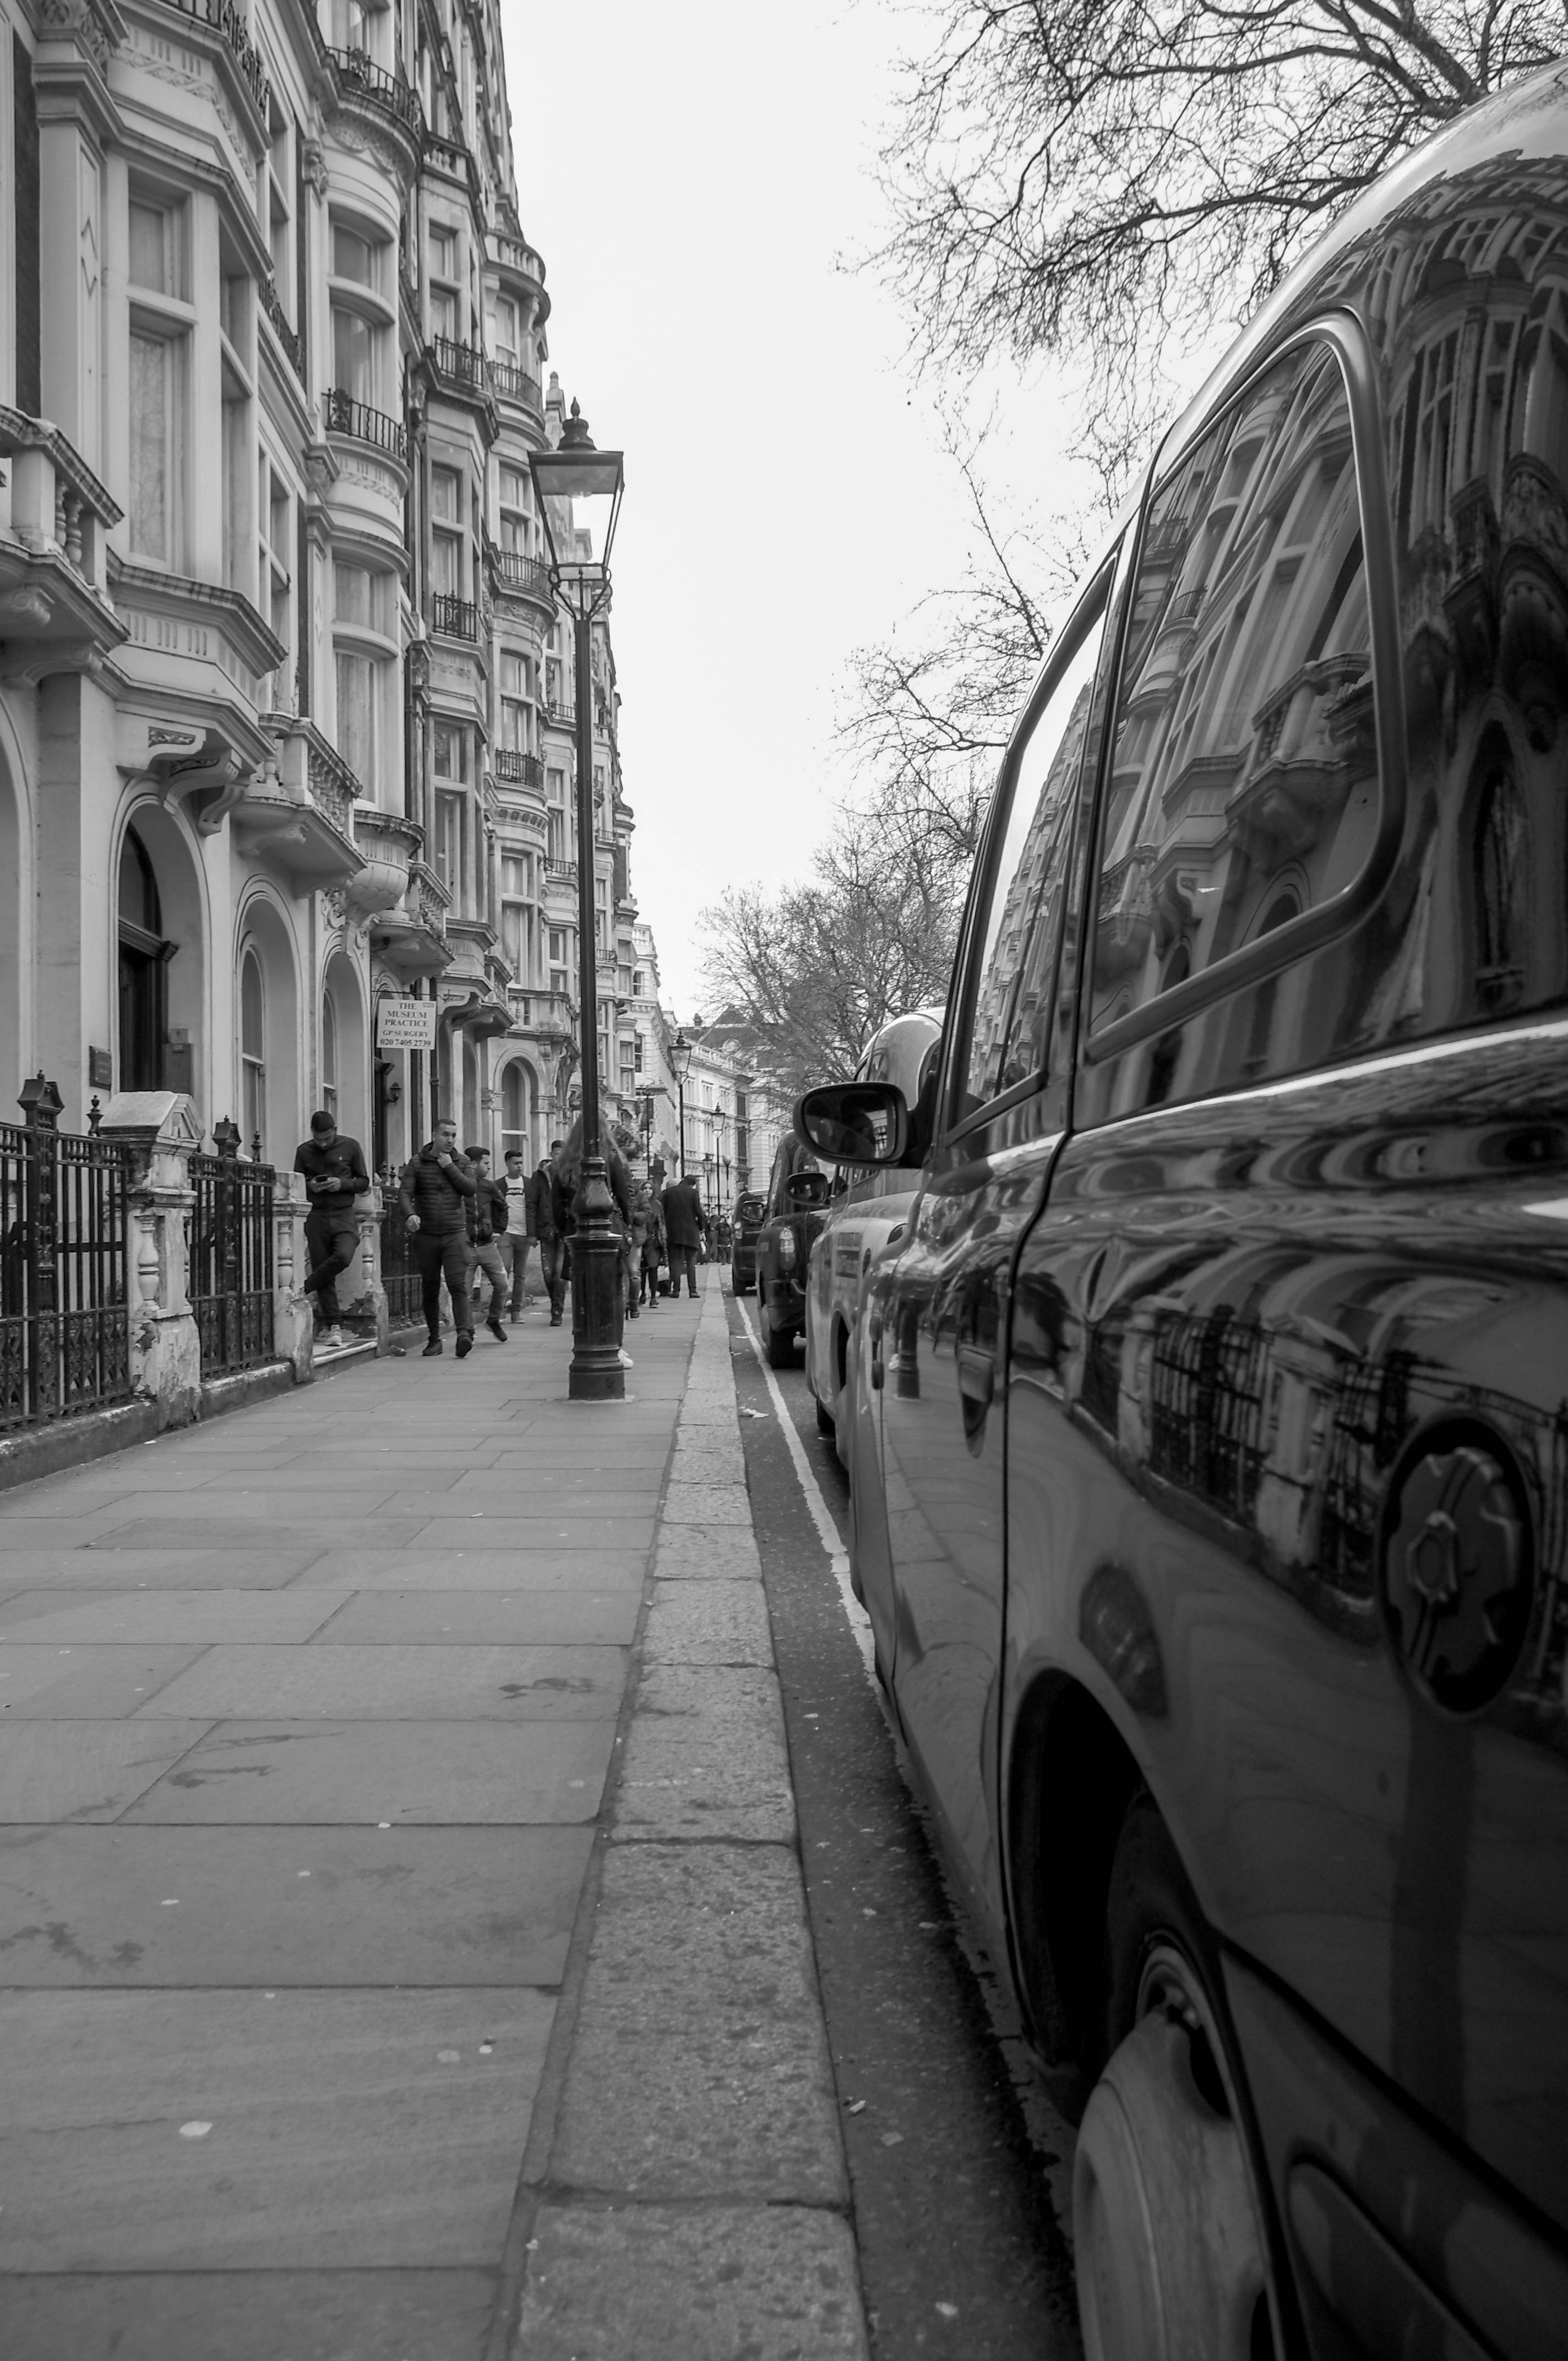 A Taxi for the British Museum - Avanguardian Gallery London